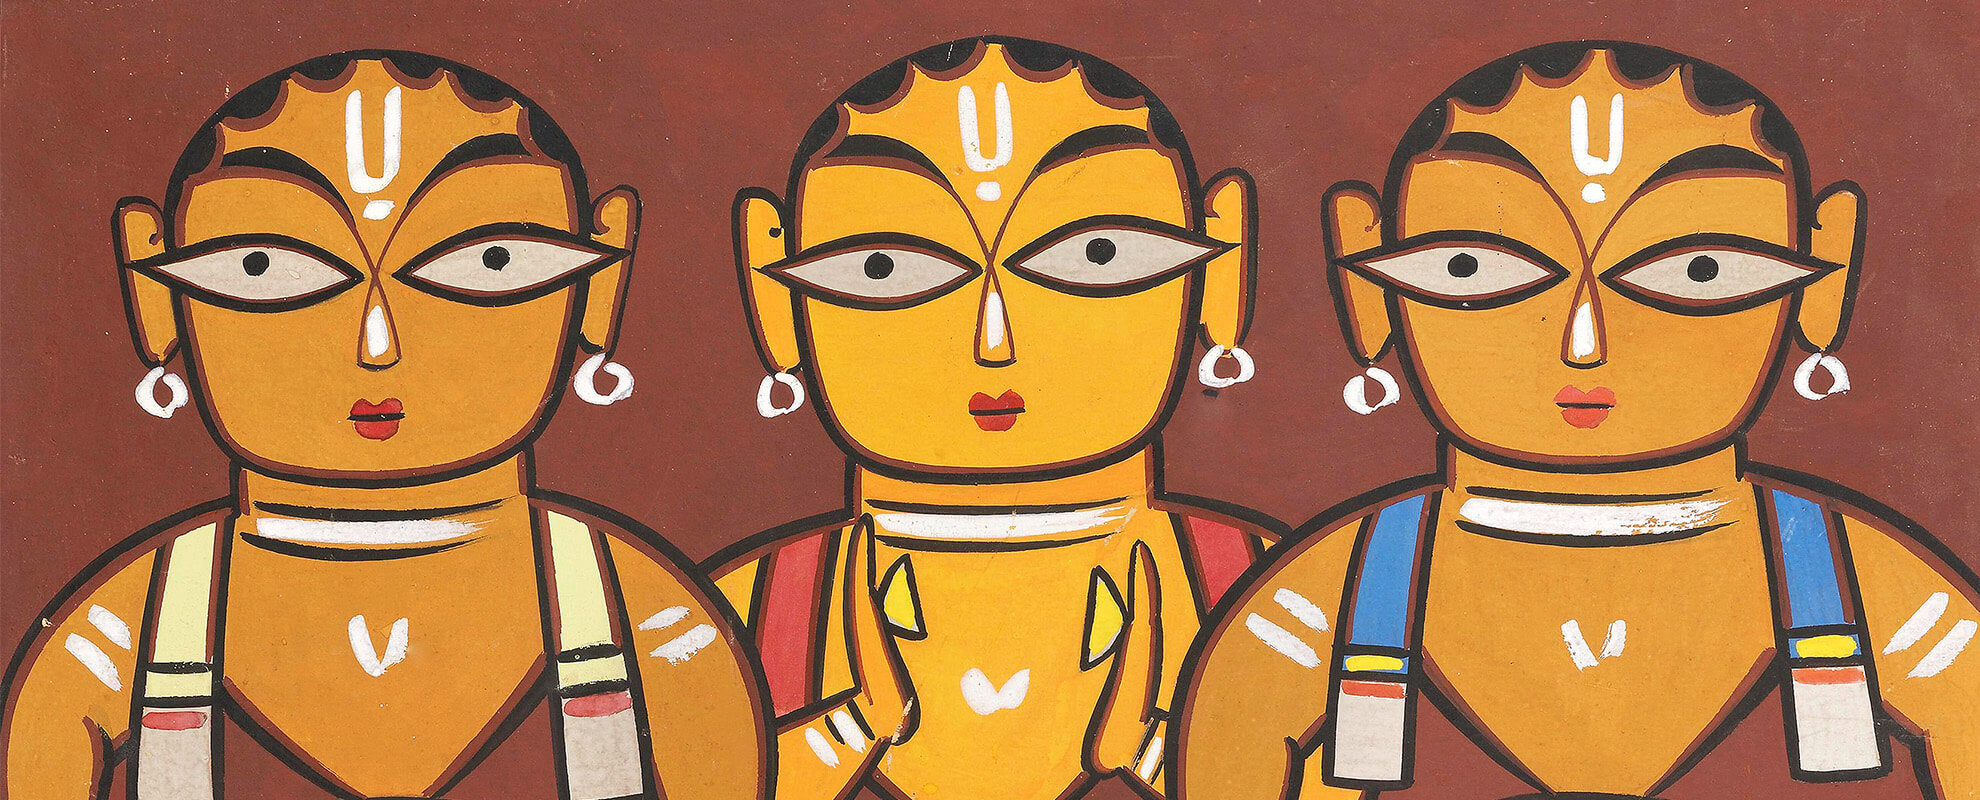 Indian Art — Indian Miniature Art | Buy Posters, Frames, Canvas, Digital Art & Large Size Prints